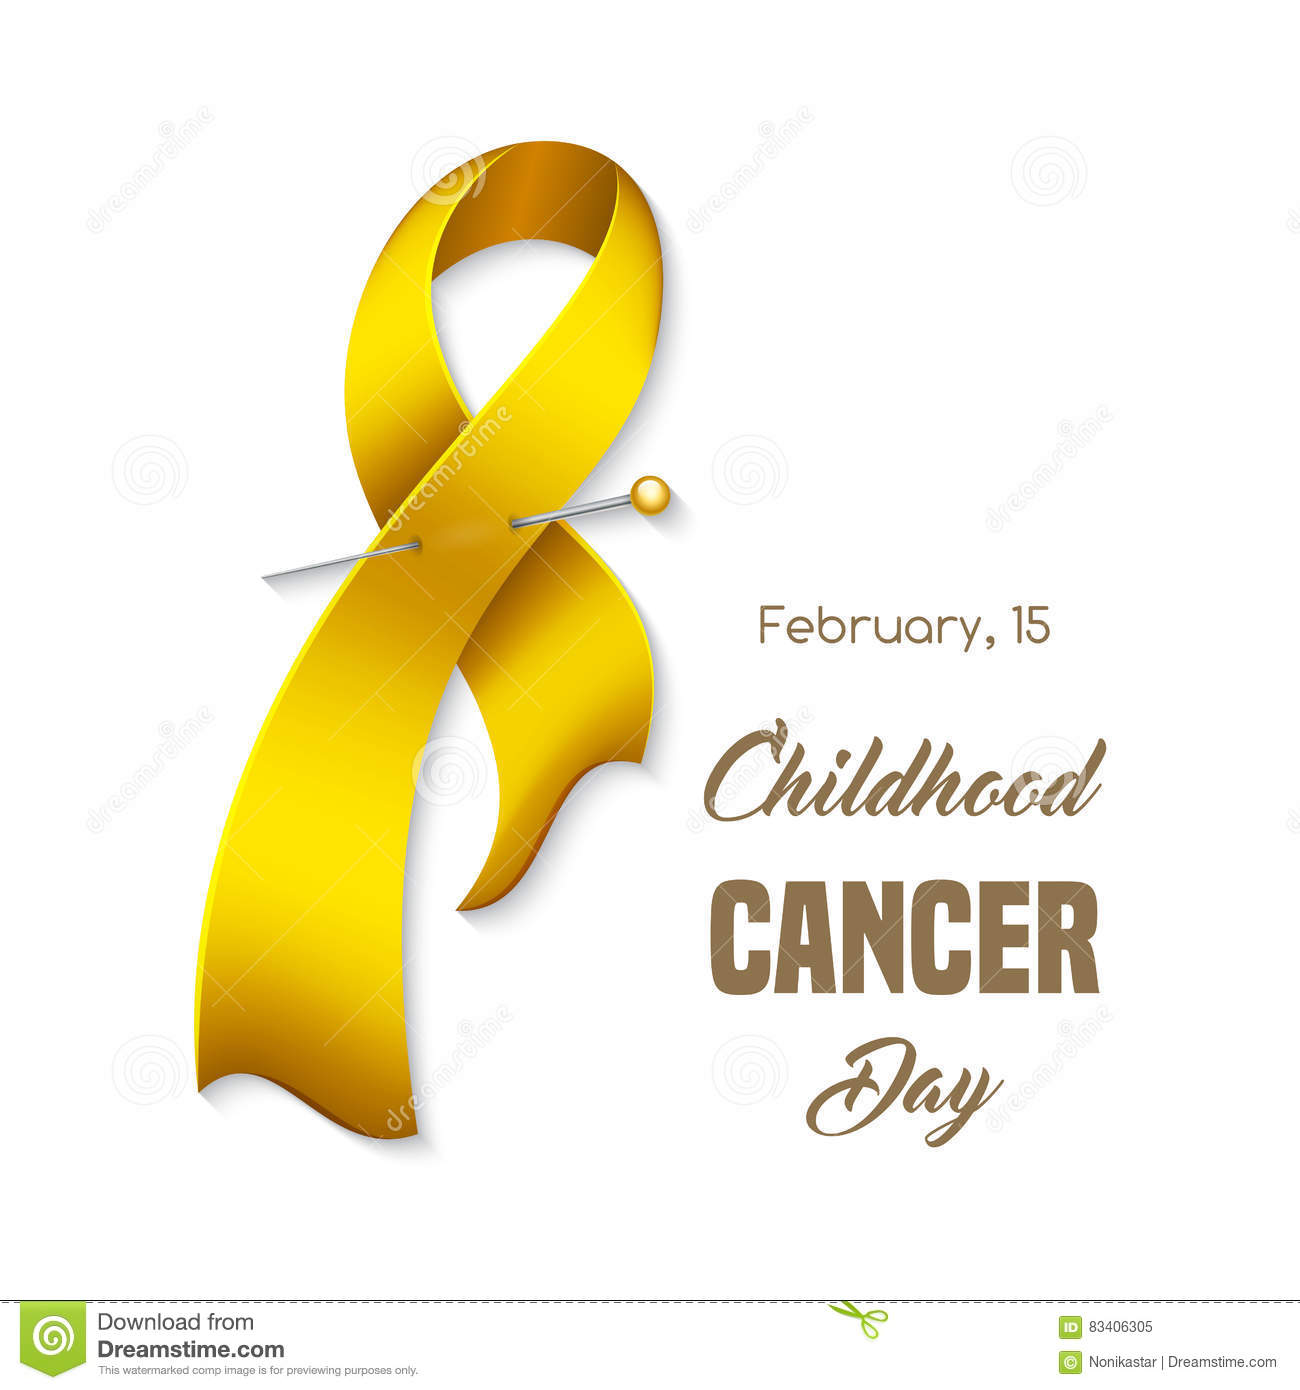 Childhood cancer ribbon stock vector illustration of banner 83406305 childhood cancer awareness ribbon poster or banner template vector illustration maxwellsz